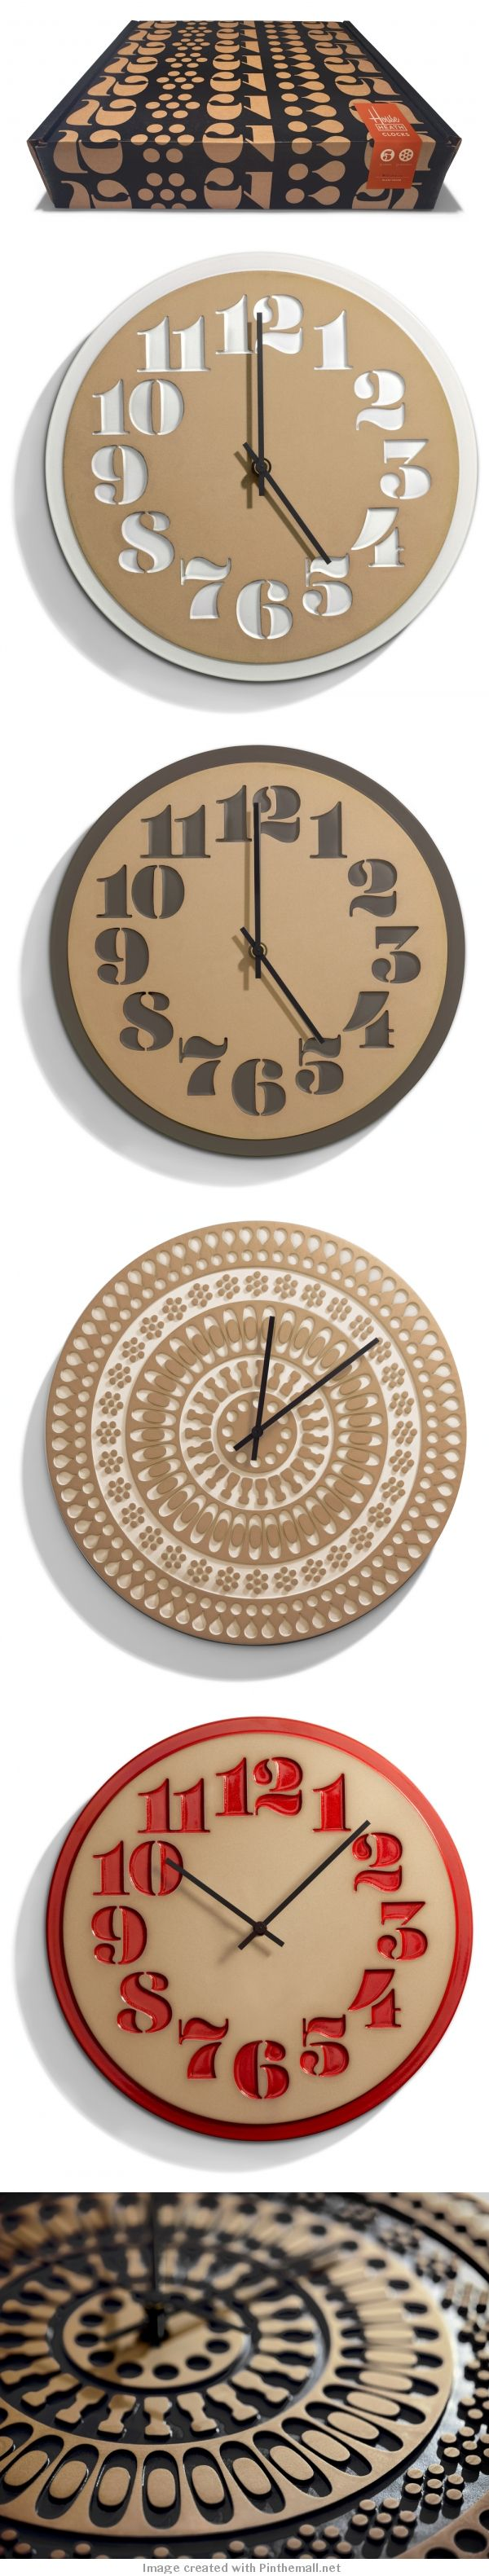 House Industries u0026 Heath Ceramics Clocks 89